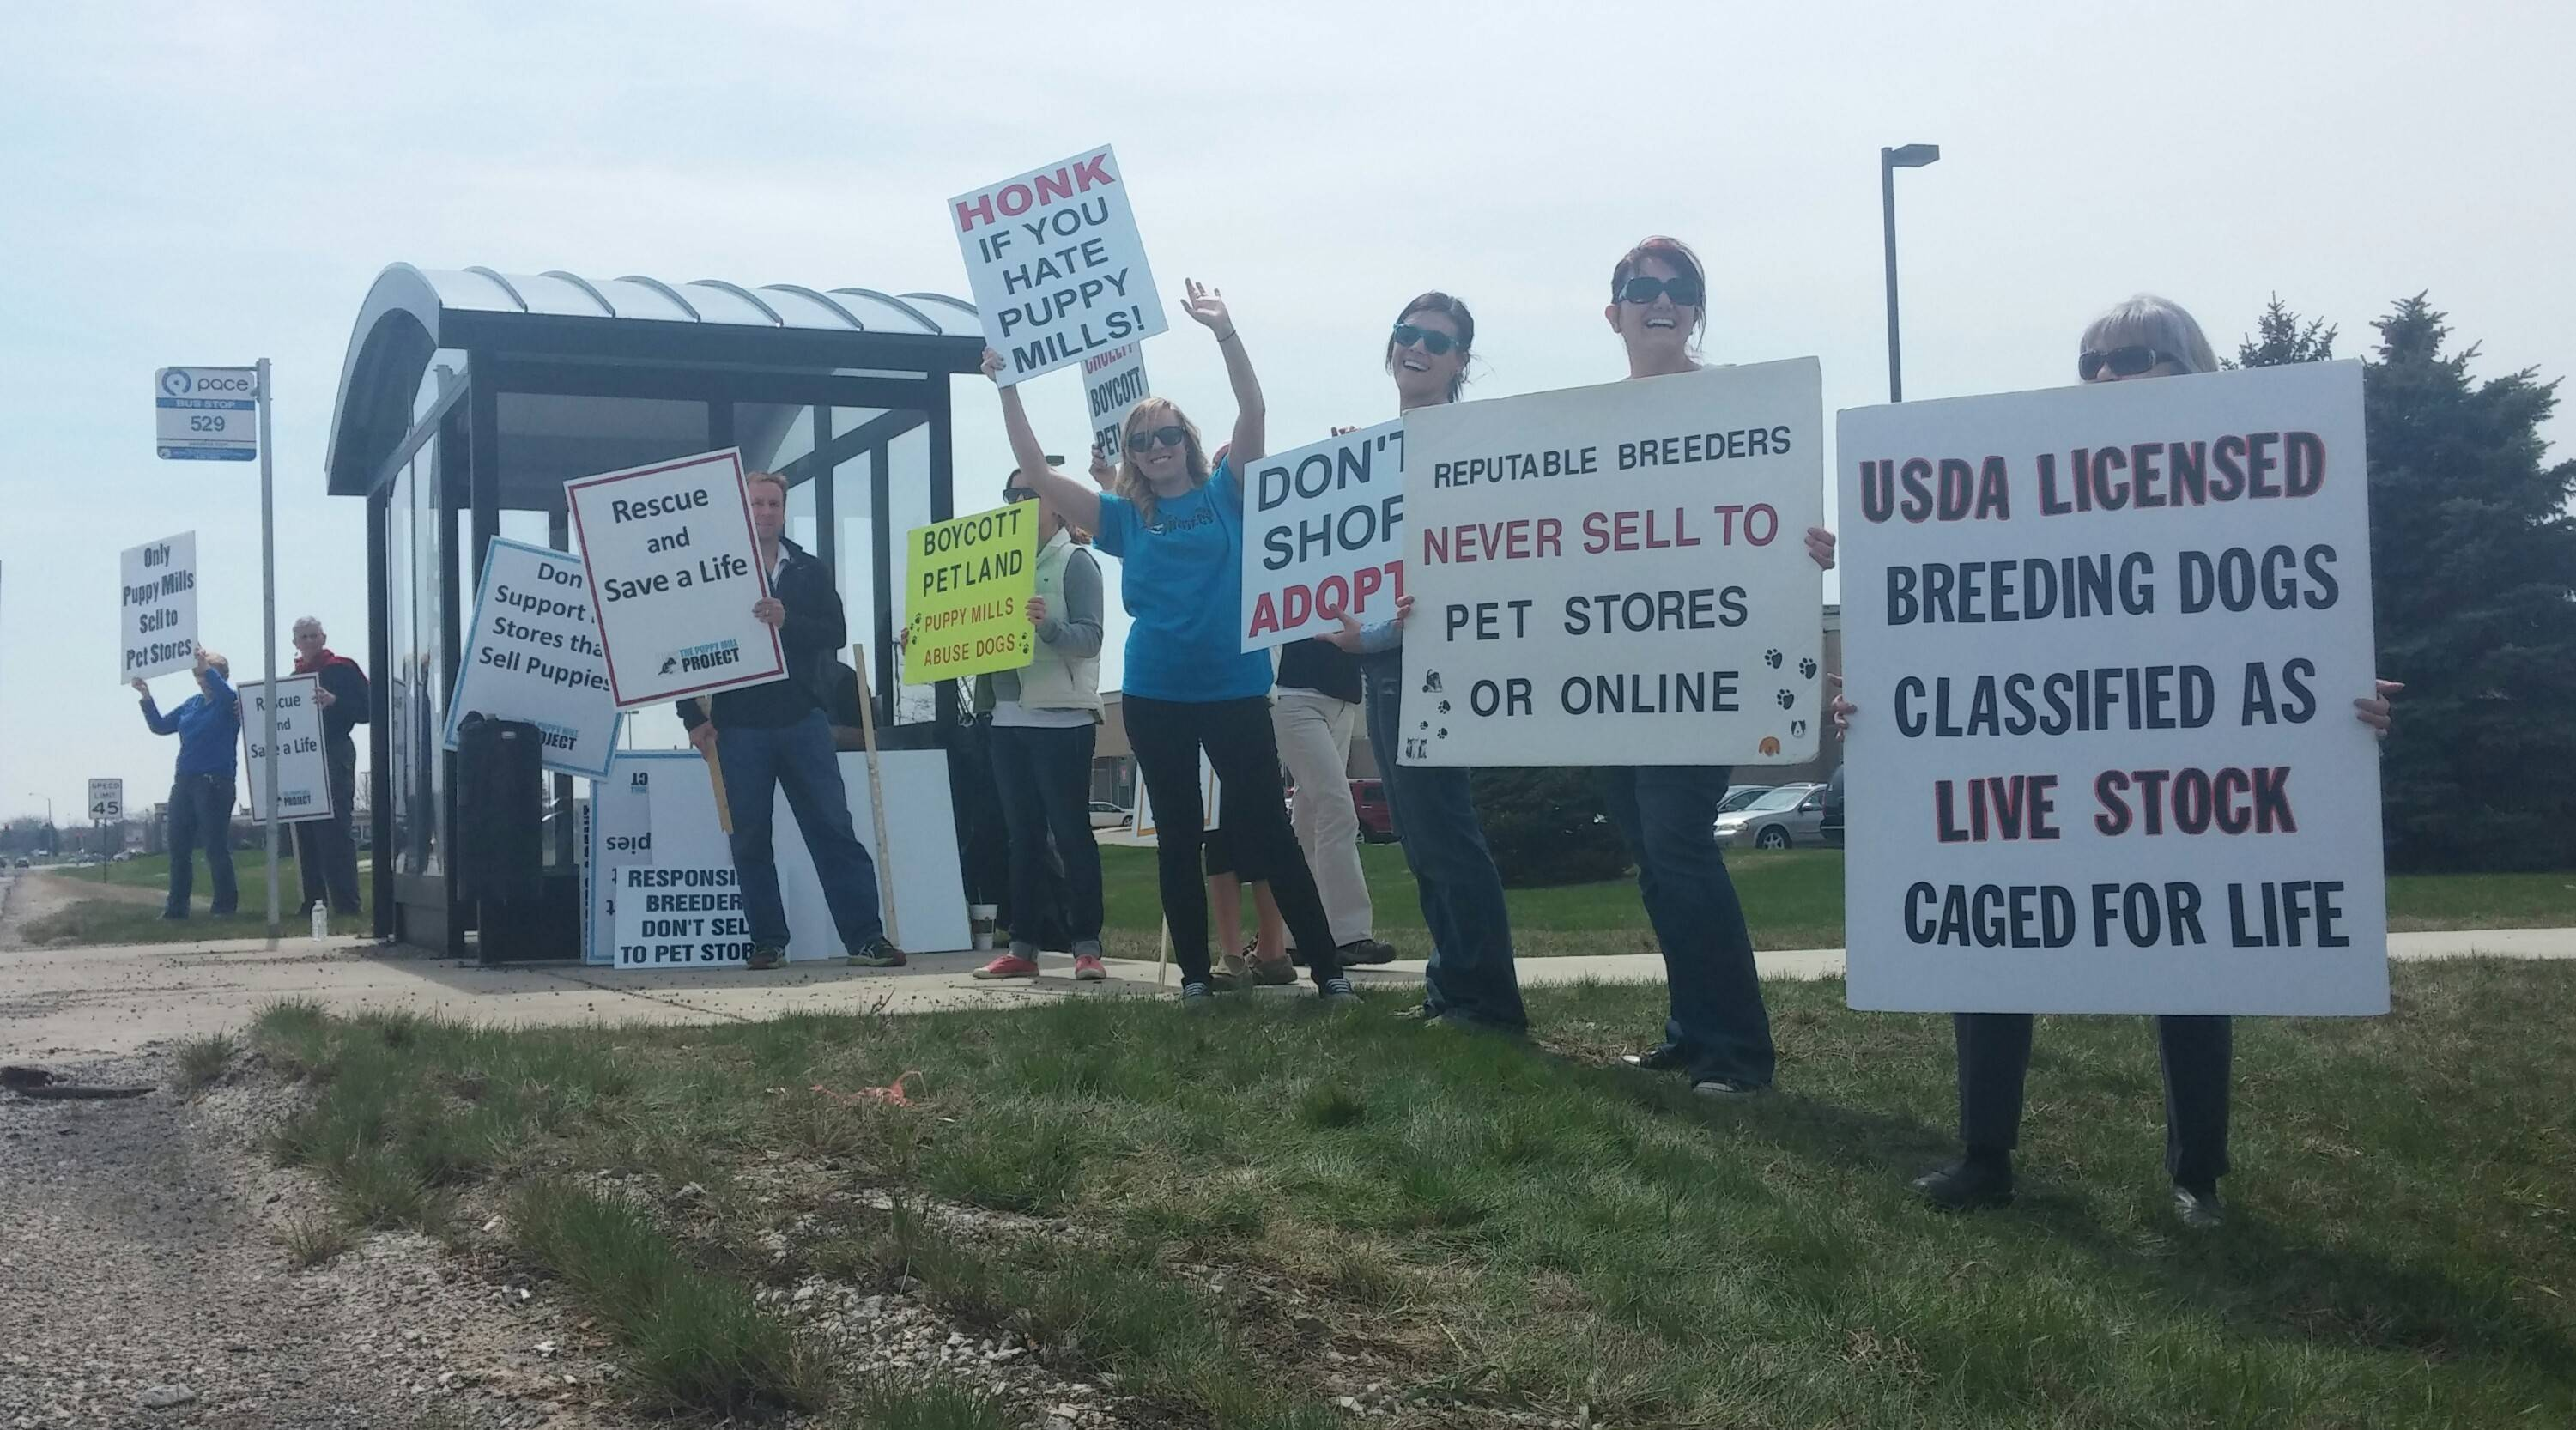 Members of The Puppy Mill Project held their first protest Saturday in Kane County on Randall Road outside the Petland in Batavia. Organizers said they sought to raise awareness about the dangers of mass breeding and to educate consumers about adoption alternatives.